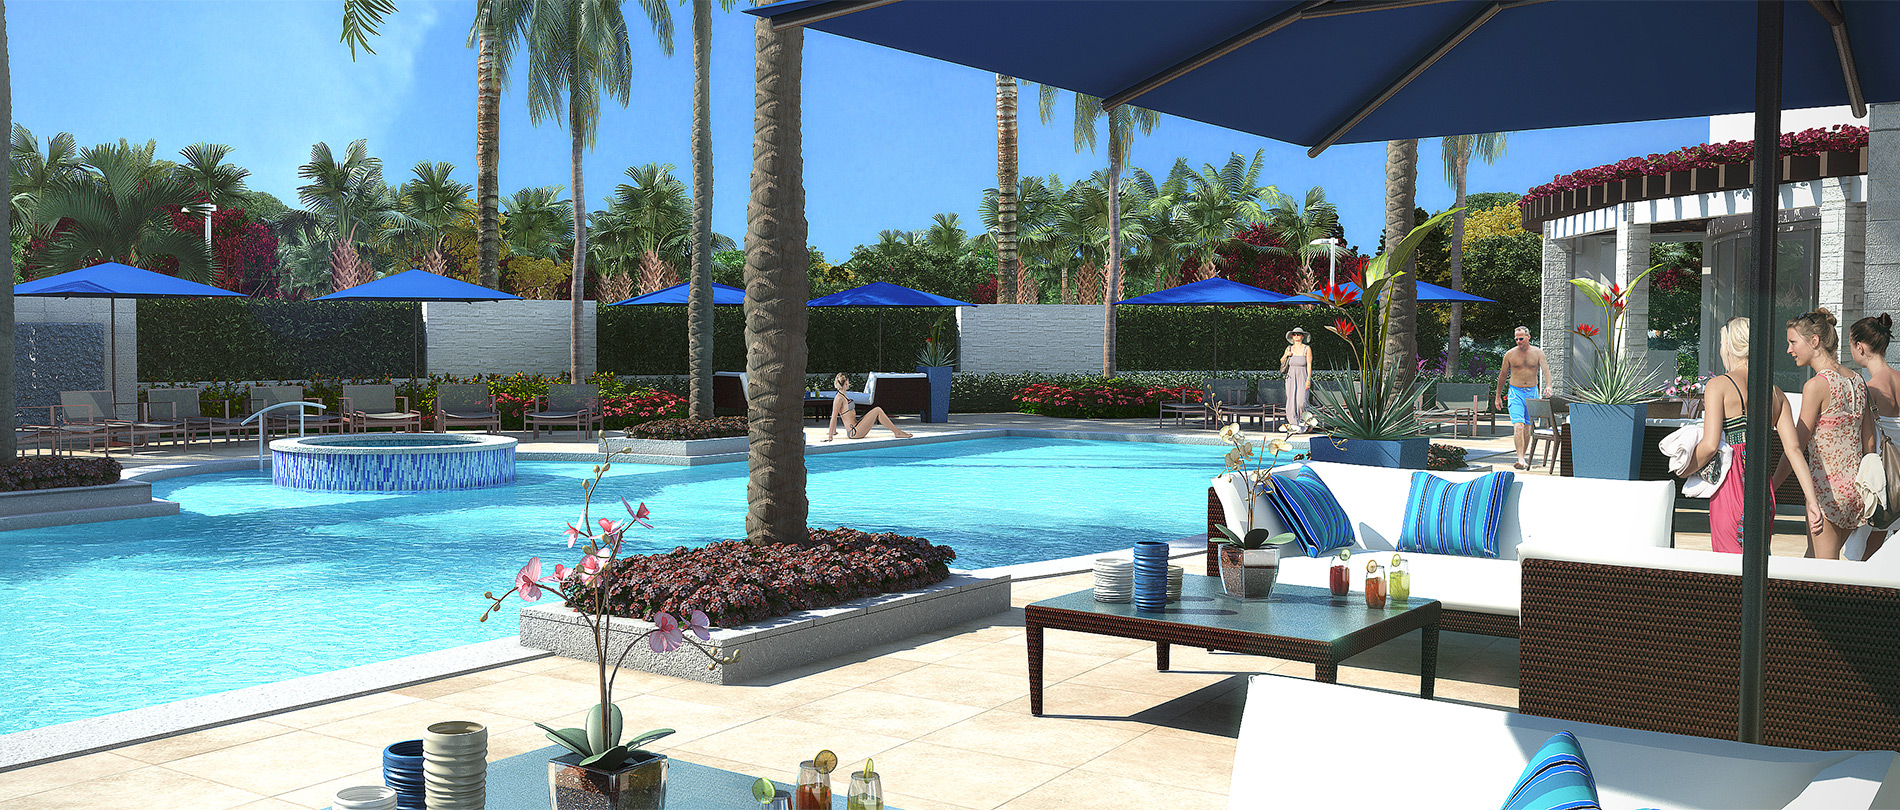 Azure luxury condos west palm beach pool new build - Palm beach pool ...